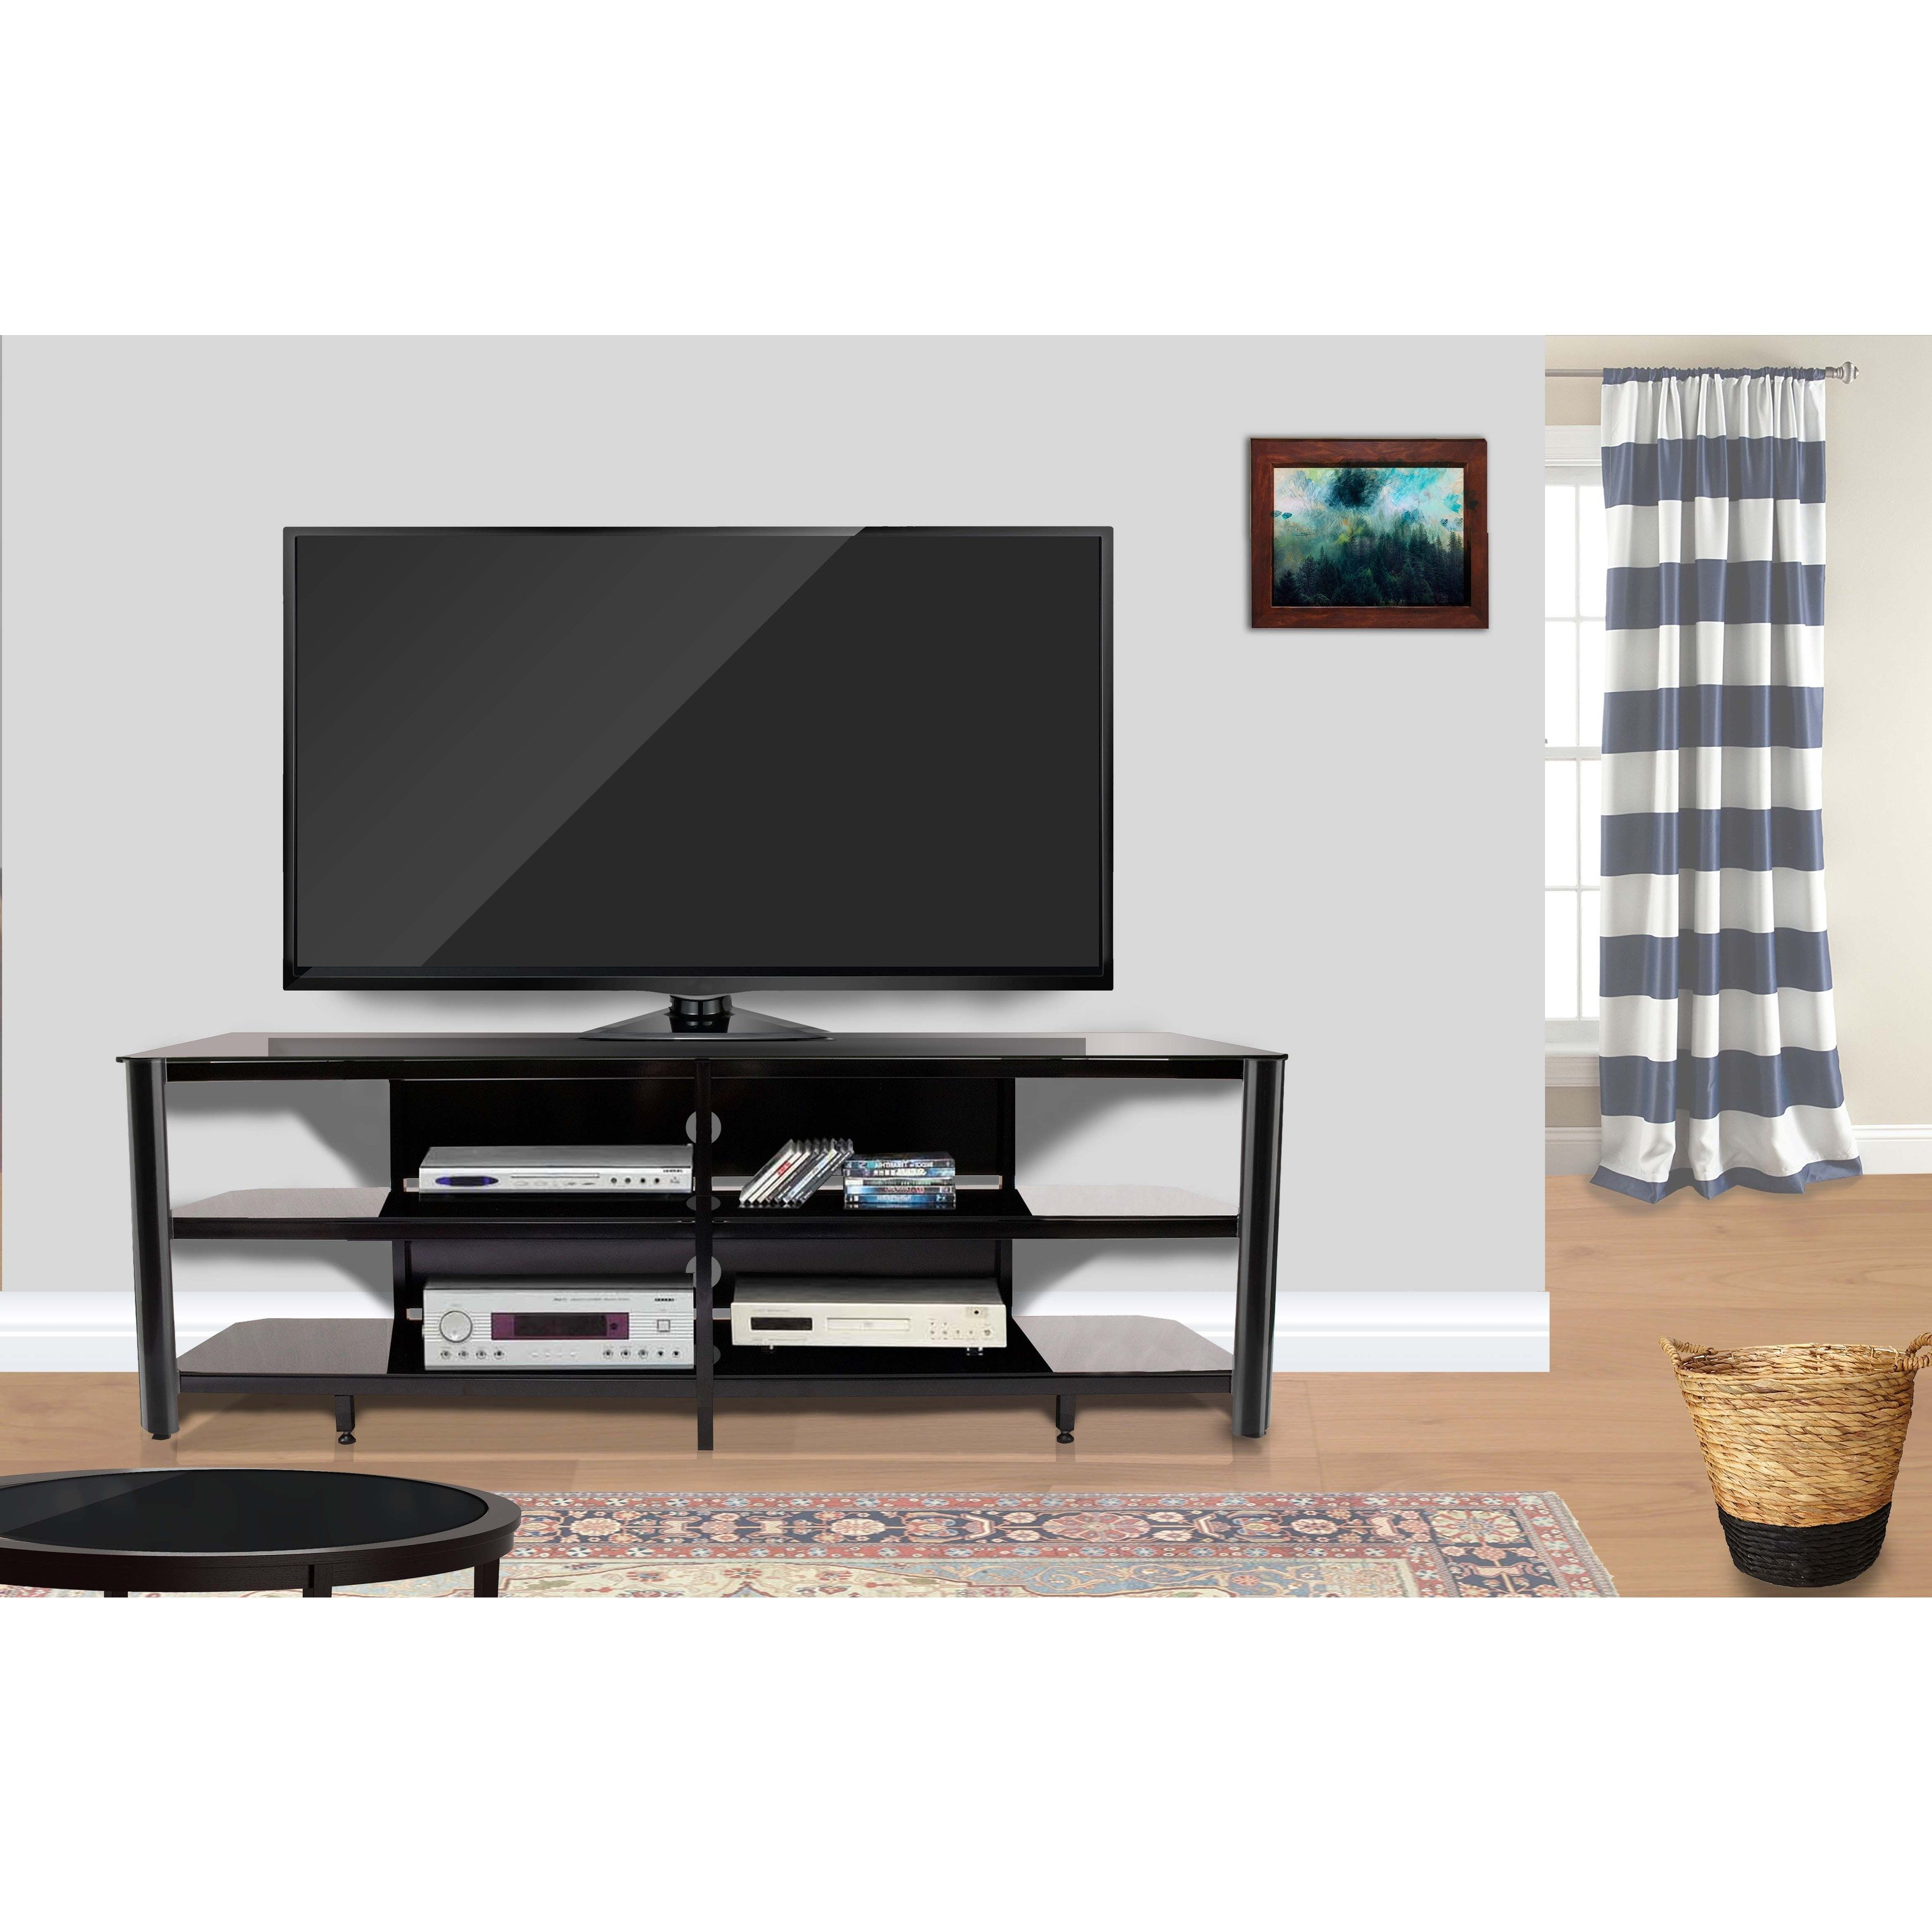 Shop Fold 'n' Snap Oxford 73 Inch Black Innovex Tv Stand – Free Regarding Oxford 60 Inch Tv Stands (View 17 of 20)